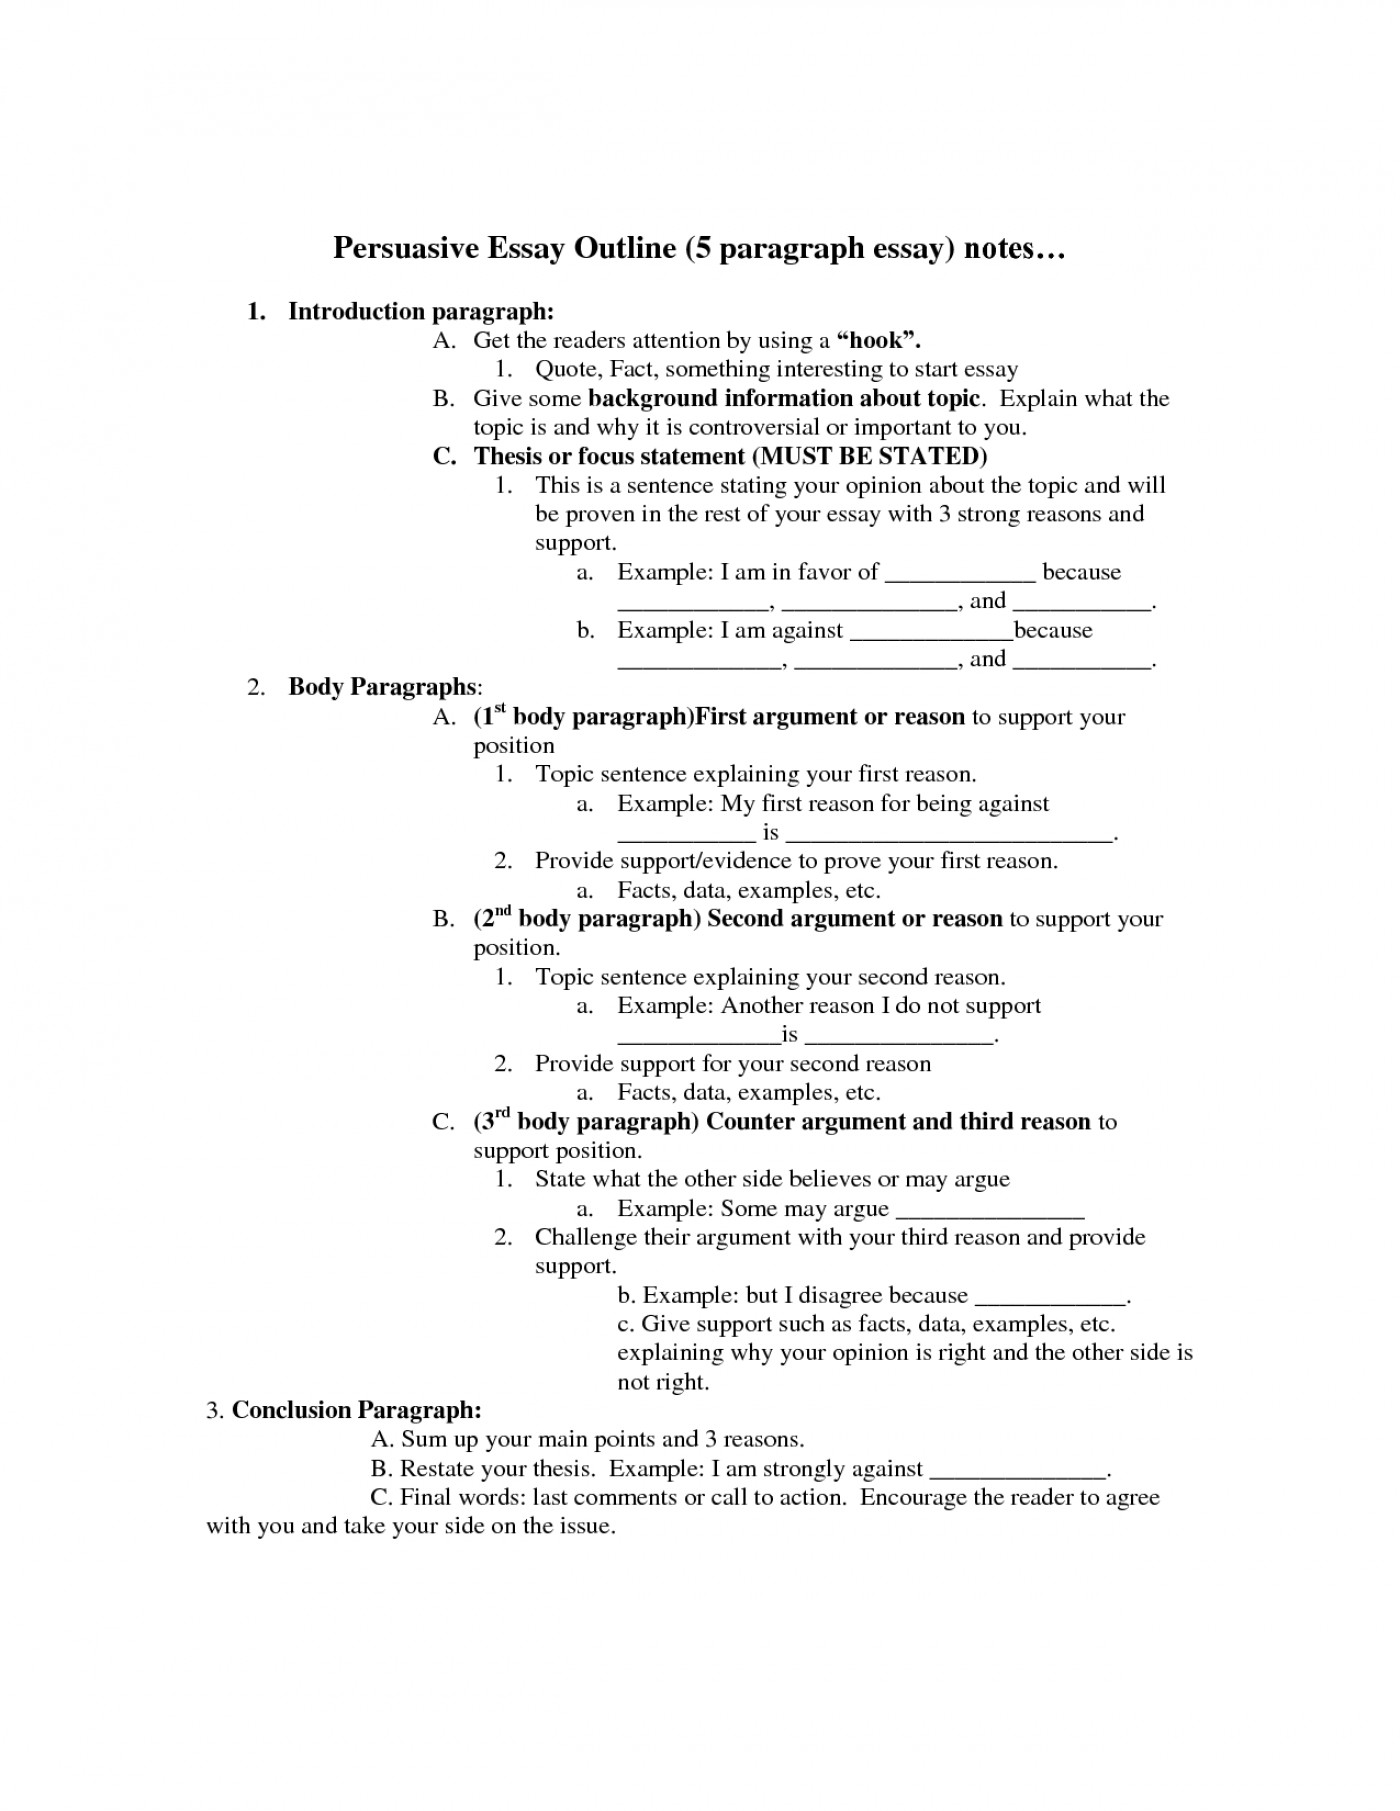 006 Persuasive Essay Outline Unbelievable Format Middle School Good Topics 5th Grade Pdf 1400